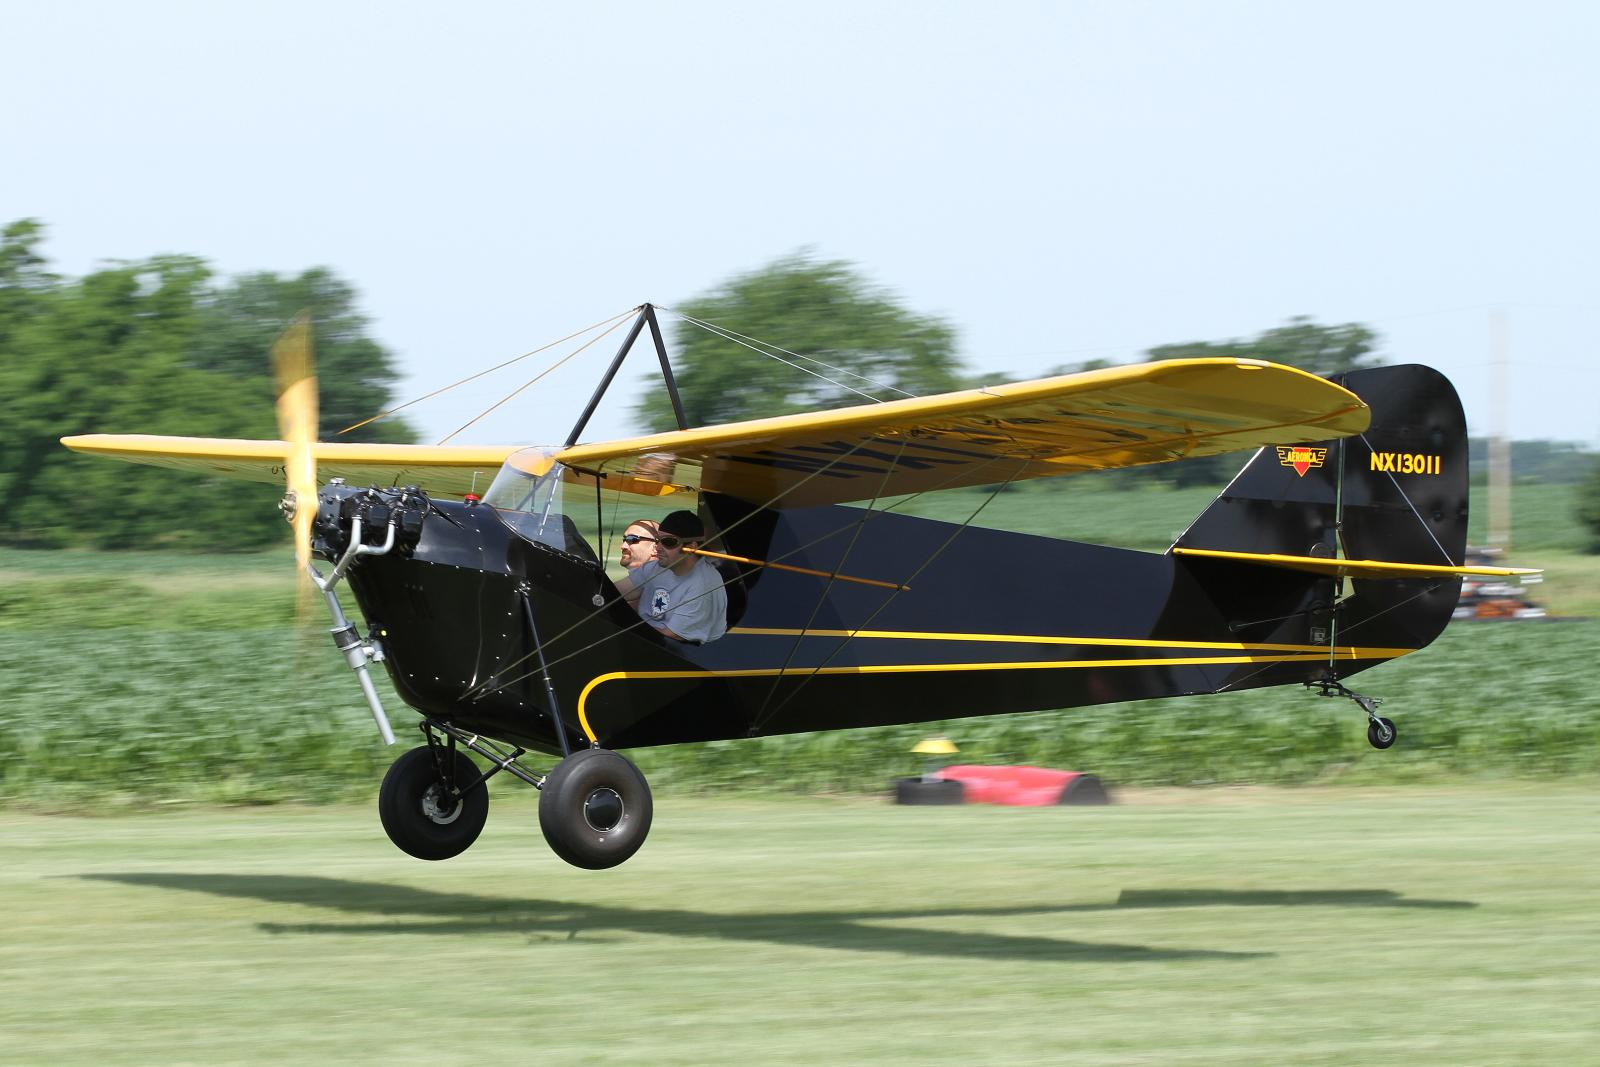 File Aeronca C 3 N13011 Jpg Wikimedia Commons